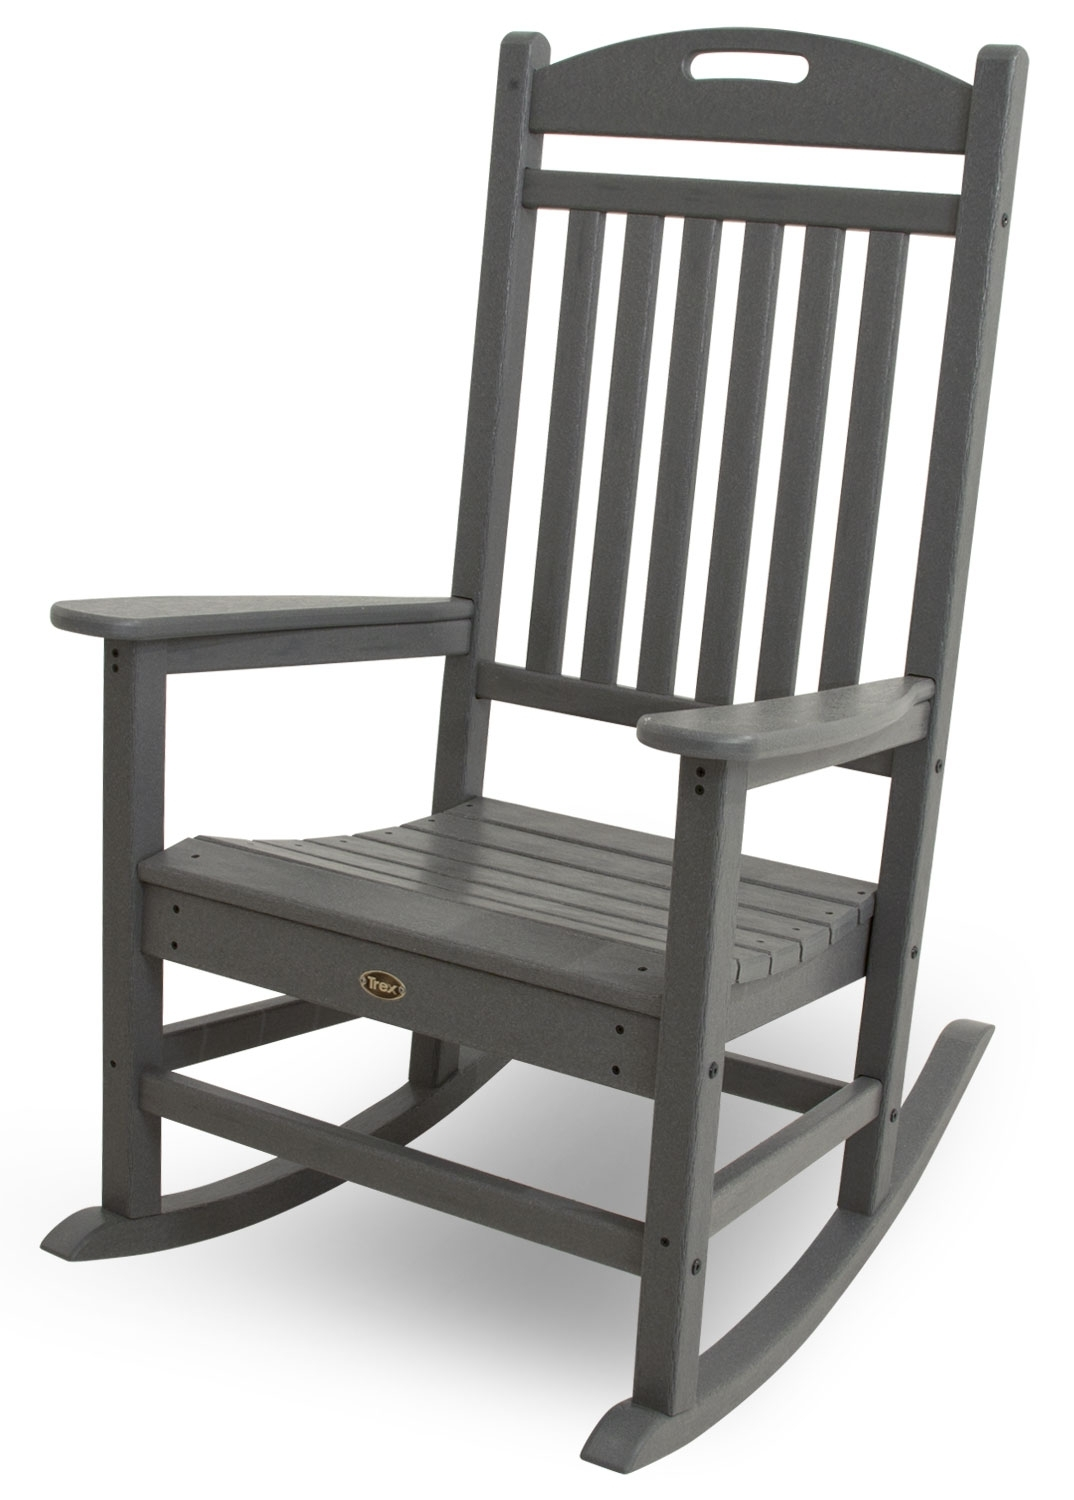 Manhattan Patio Rocking Chair Grey Rona For Manhattan Patio Grey Rocking Chairs (#6 of 15)